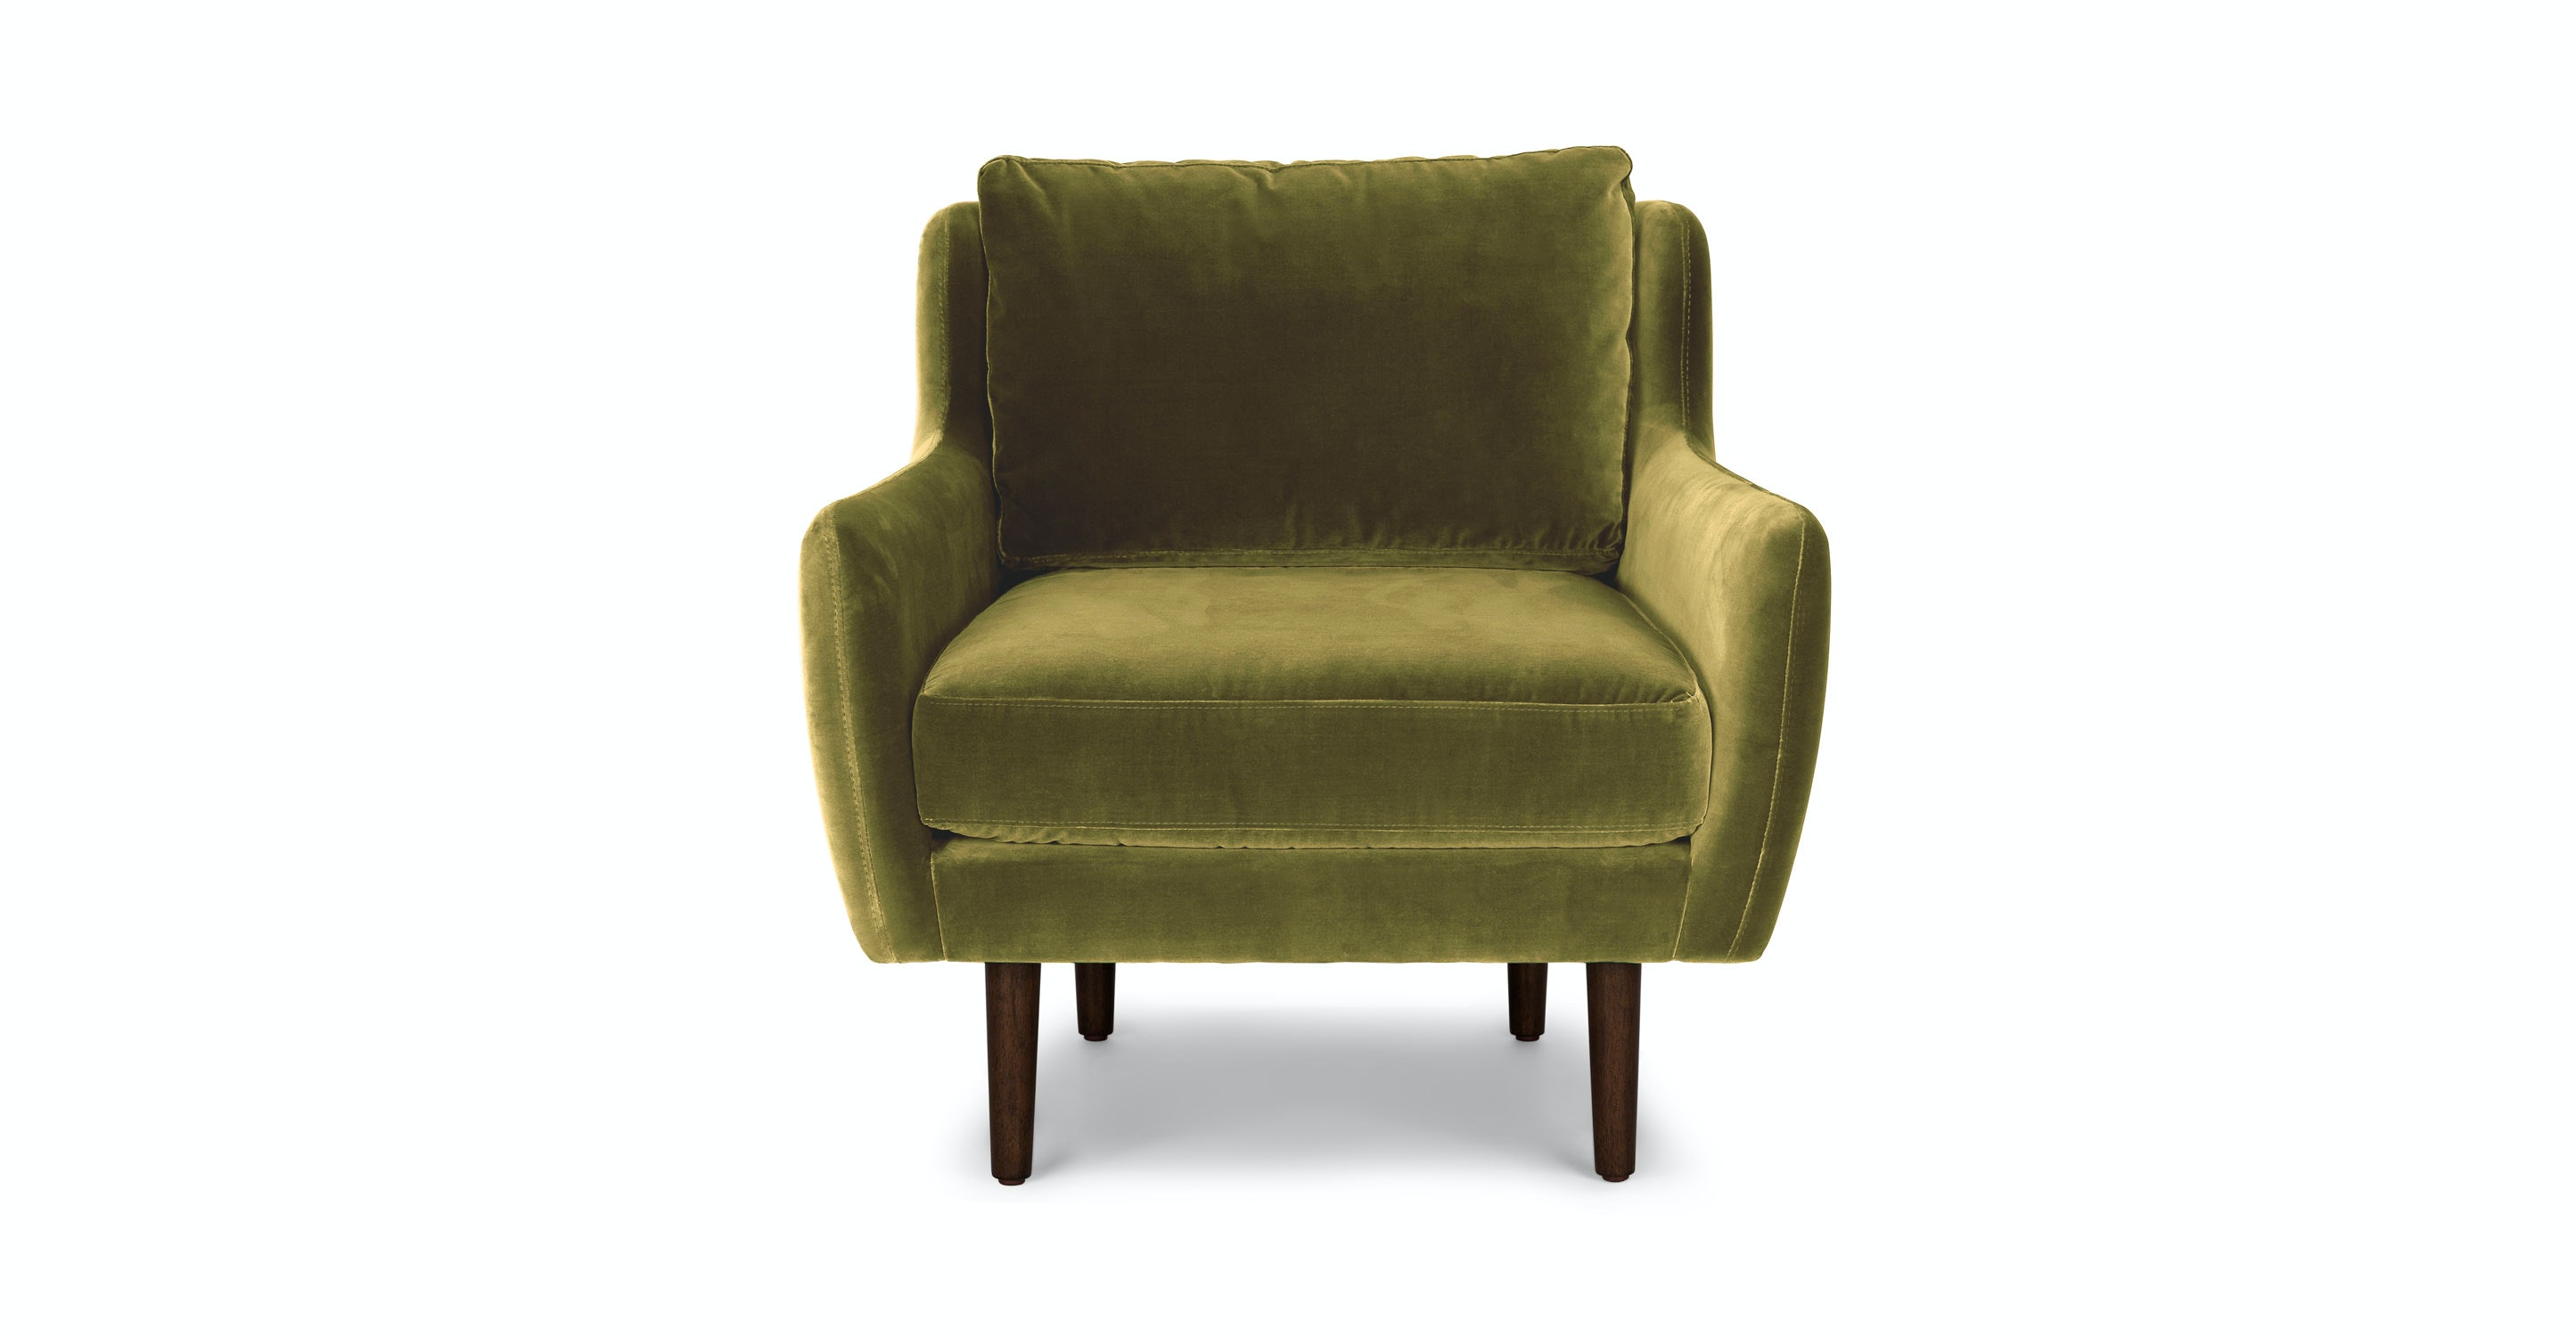 Matrix Olive Green Chair